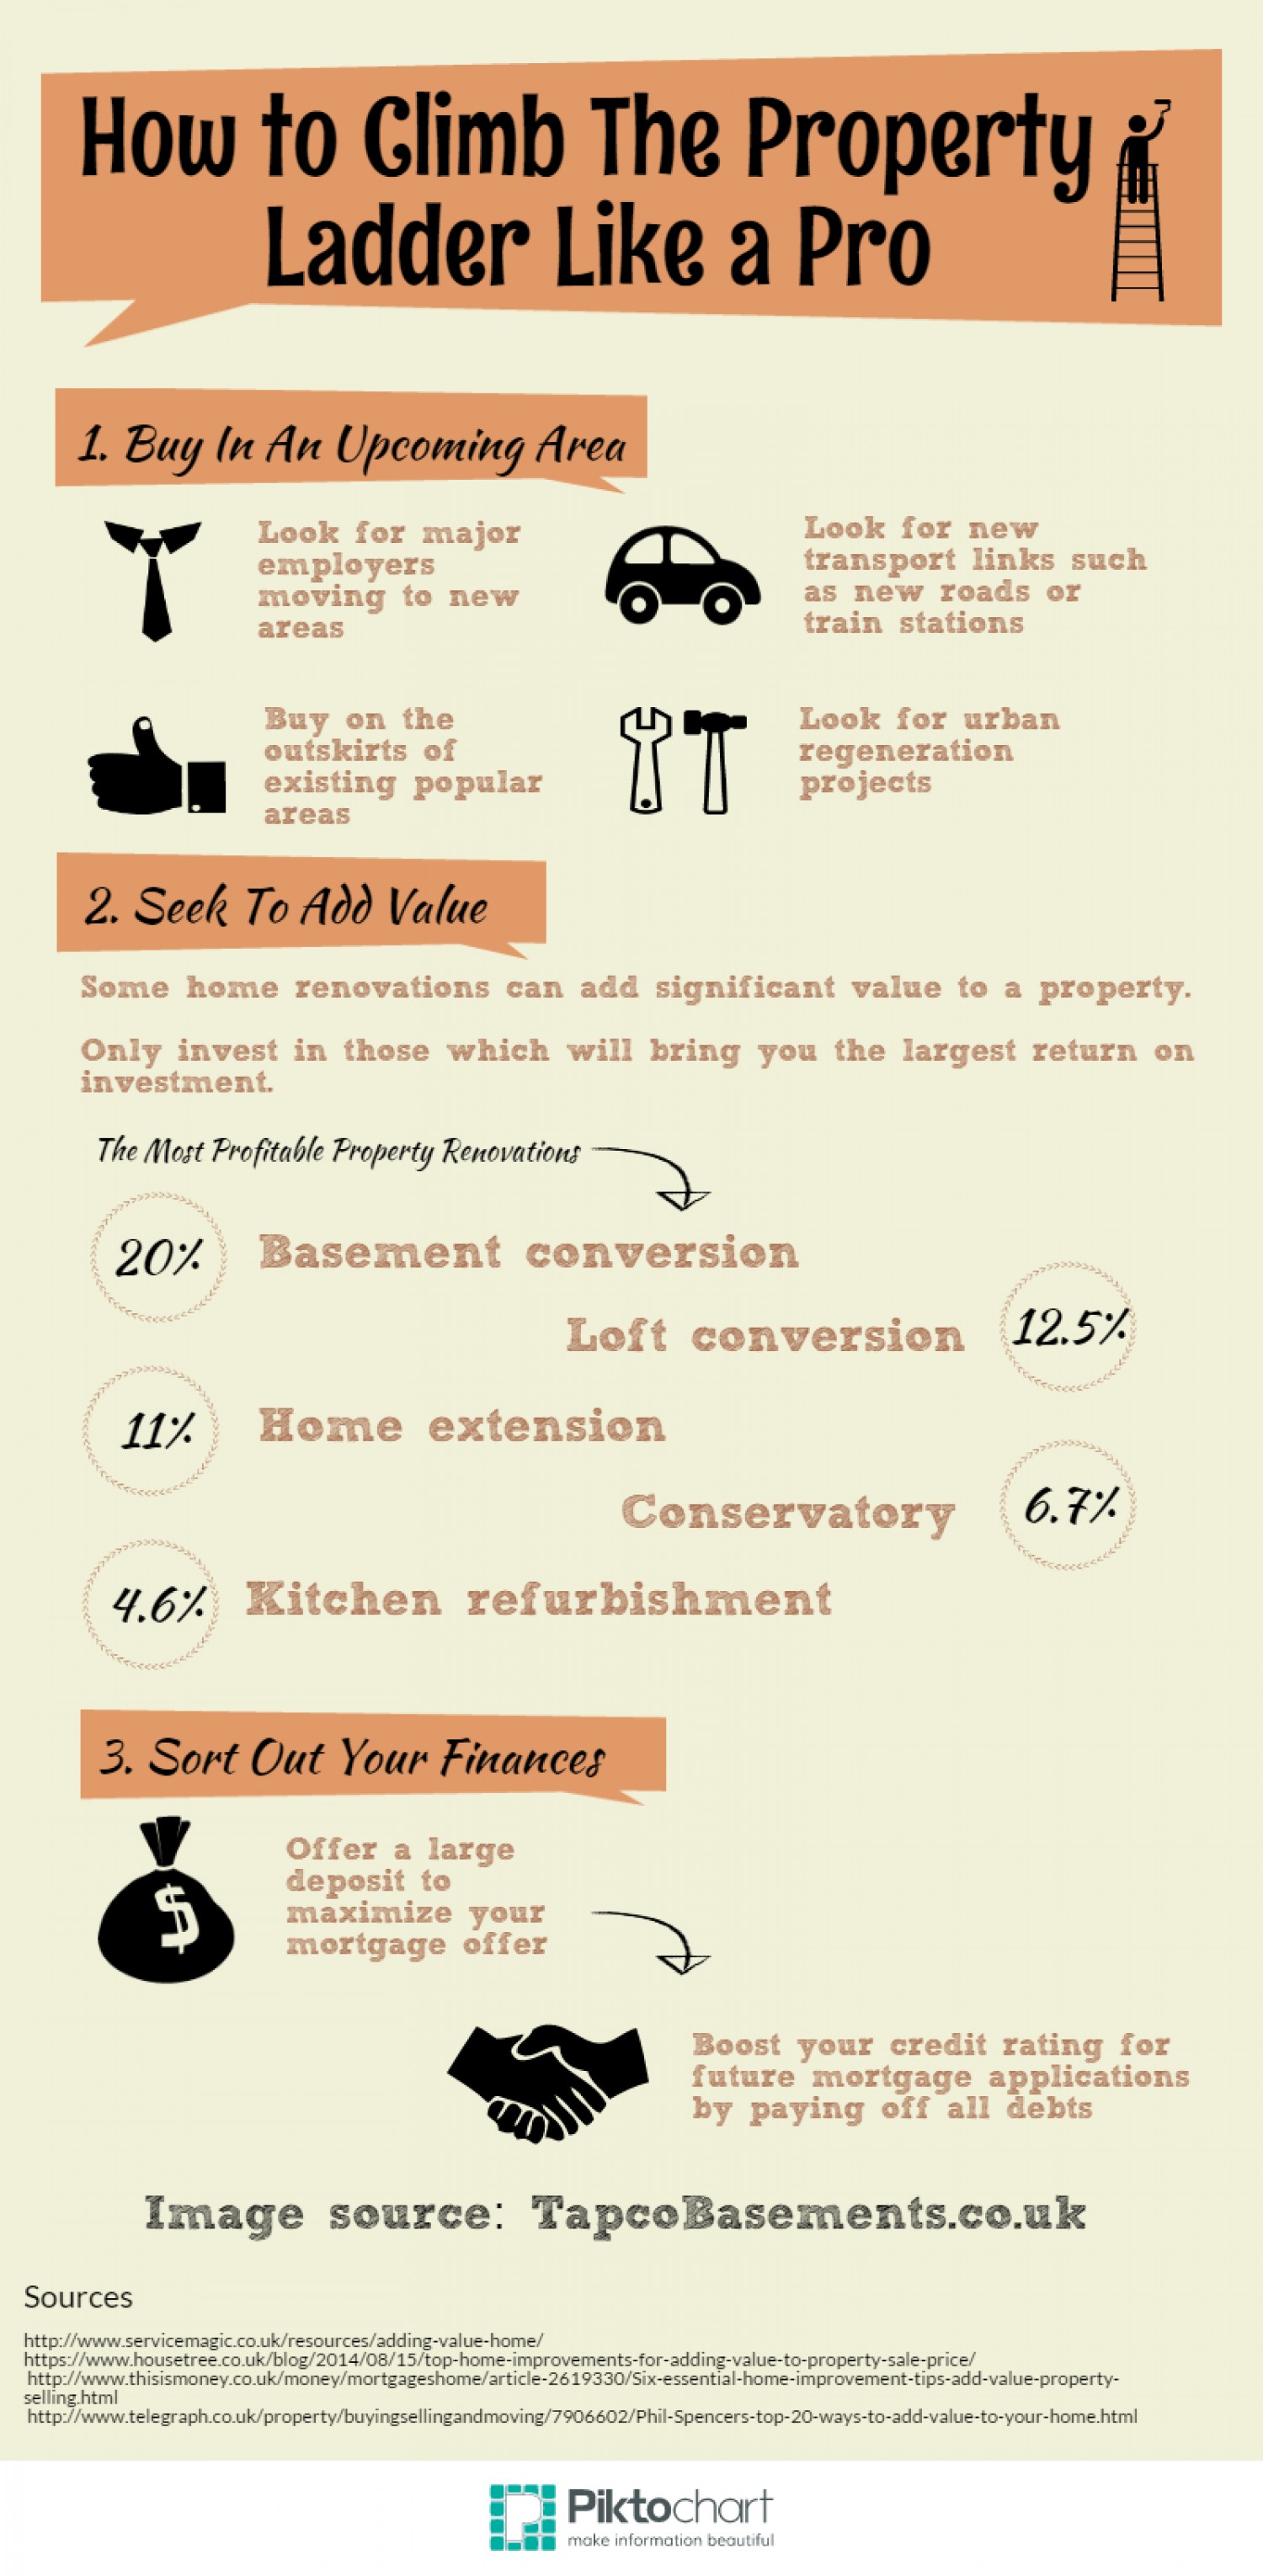 How To Climb The Property Ladder Like A Pro Infographic